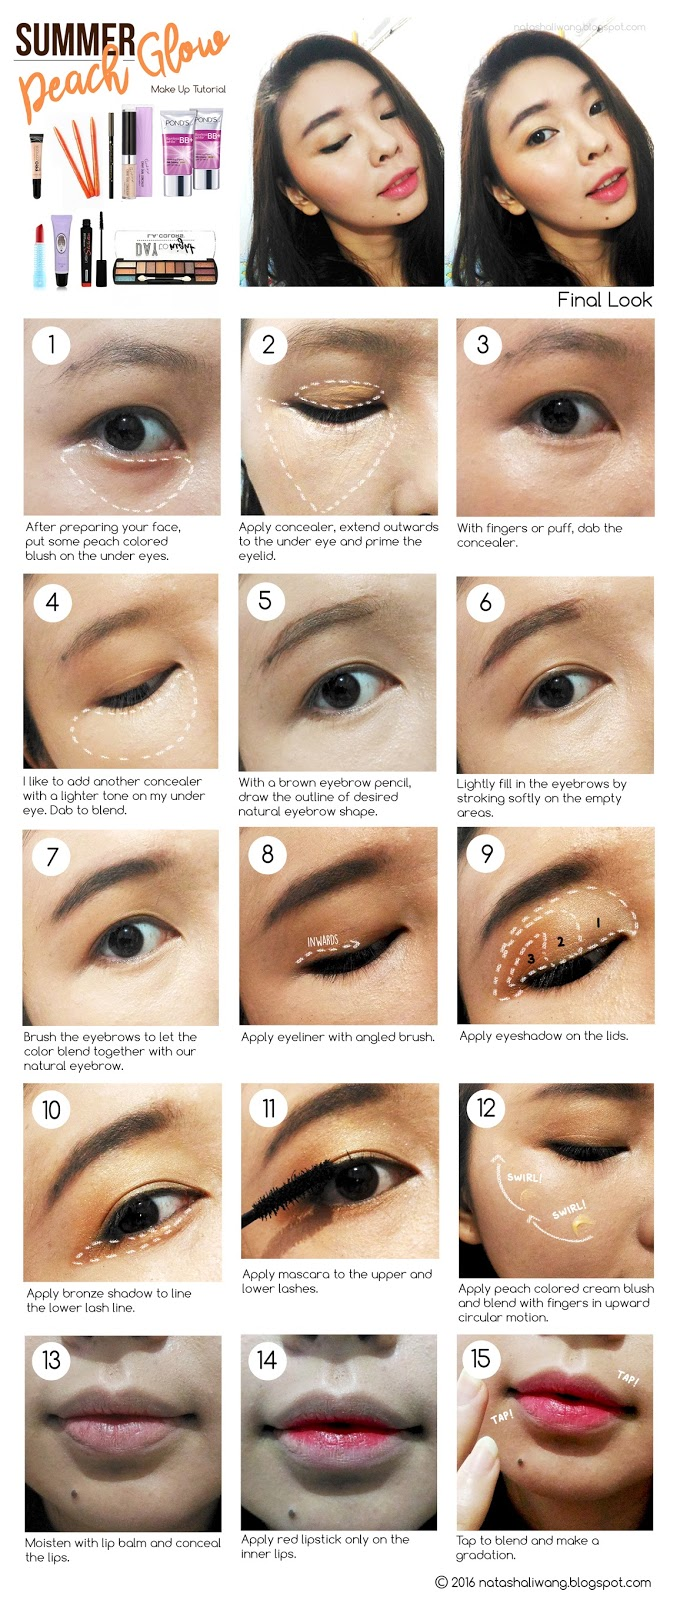 How To Apply Makeup For A Natural Look (4) Summer Peach Glow Make Up Guide  Lady On Budget: Make Up Guide: Summer Peach